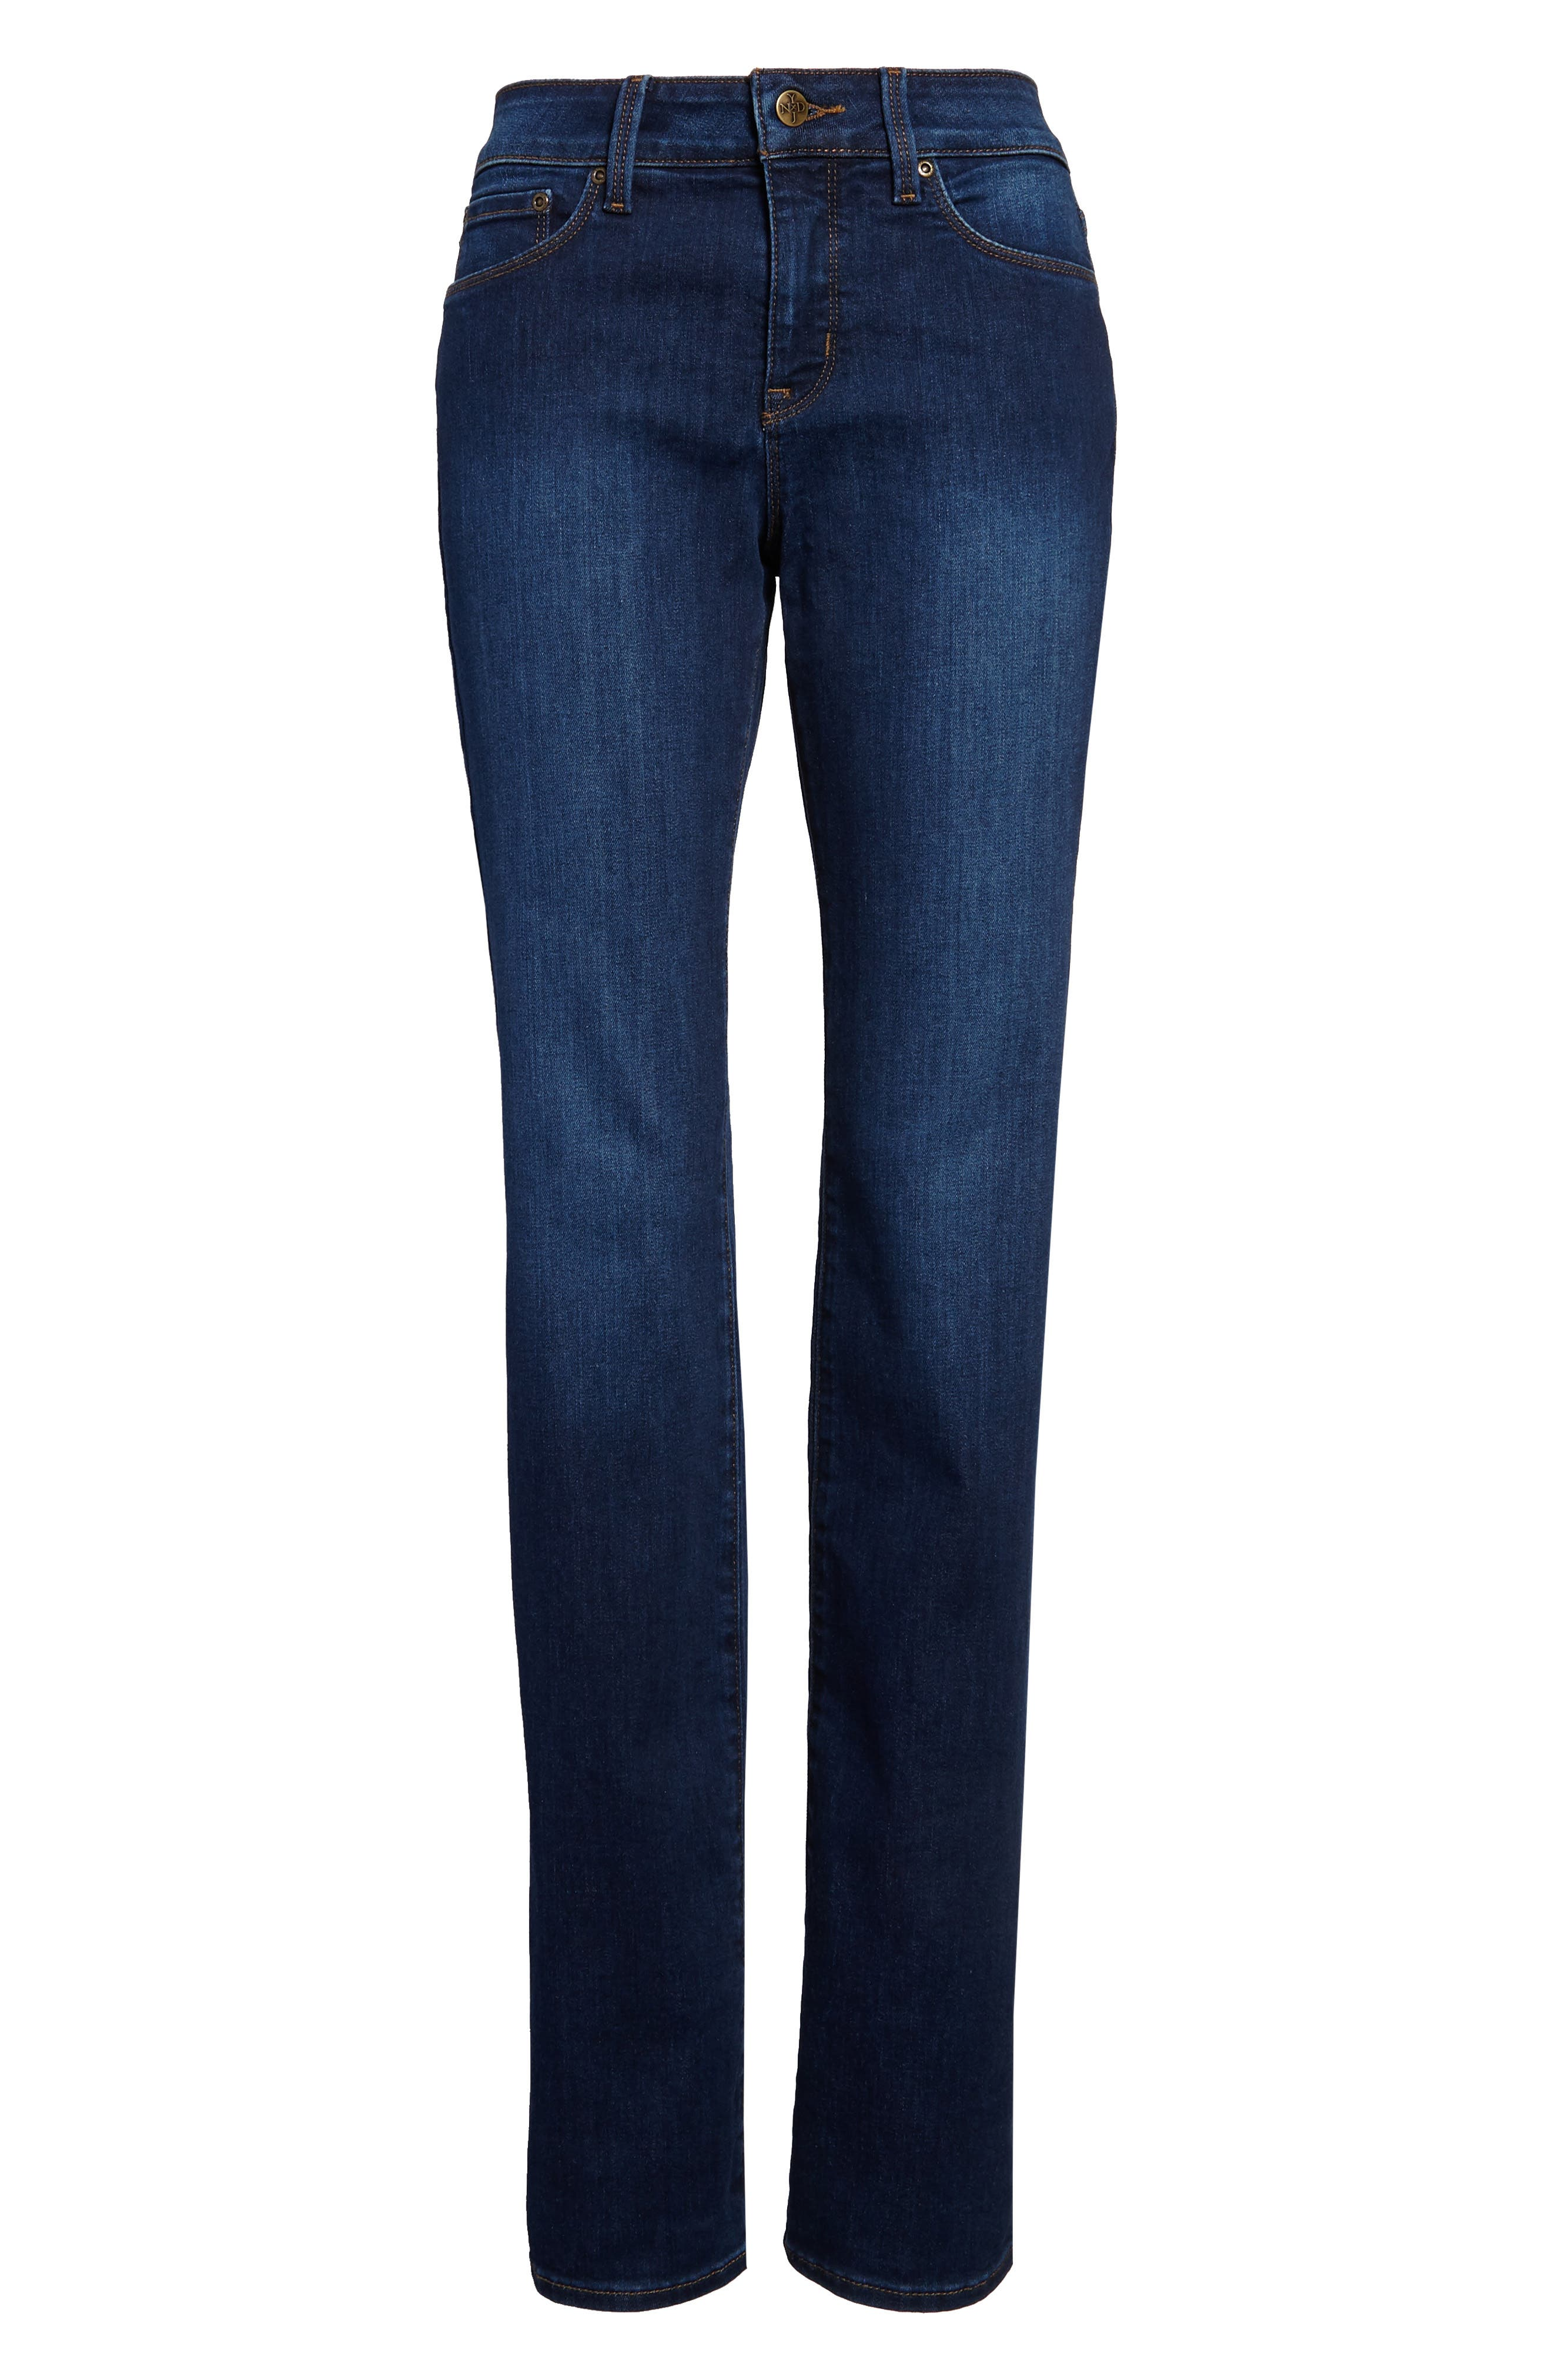 NYDJ, Marilyn High Waist Stretch Straight Leg Jeans, Alternate thumbnail 5, color, COOPER